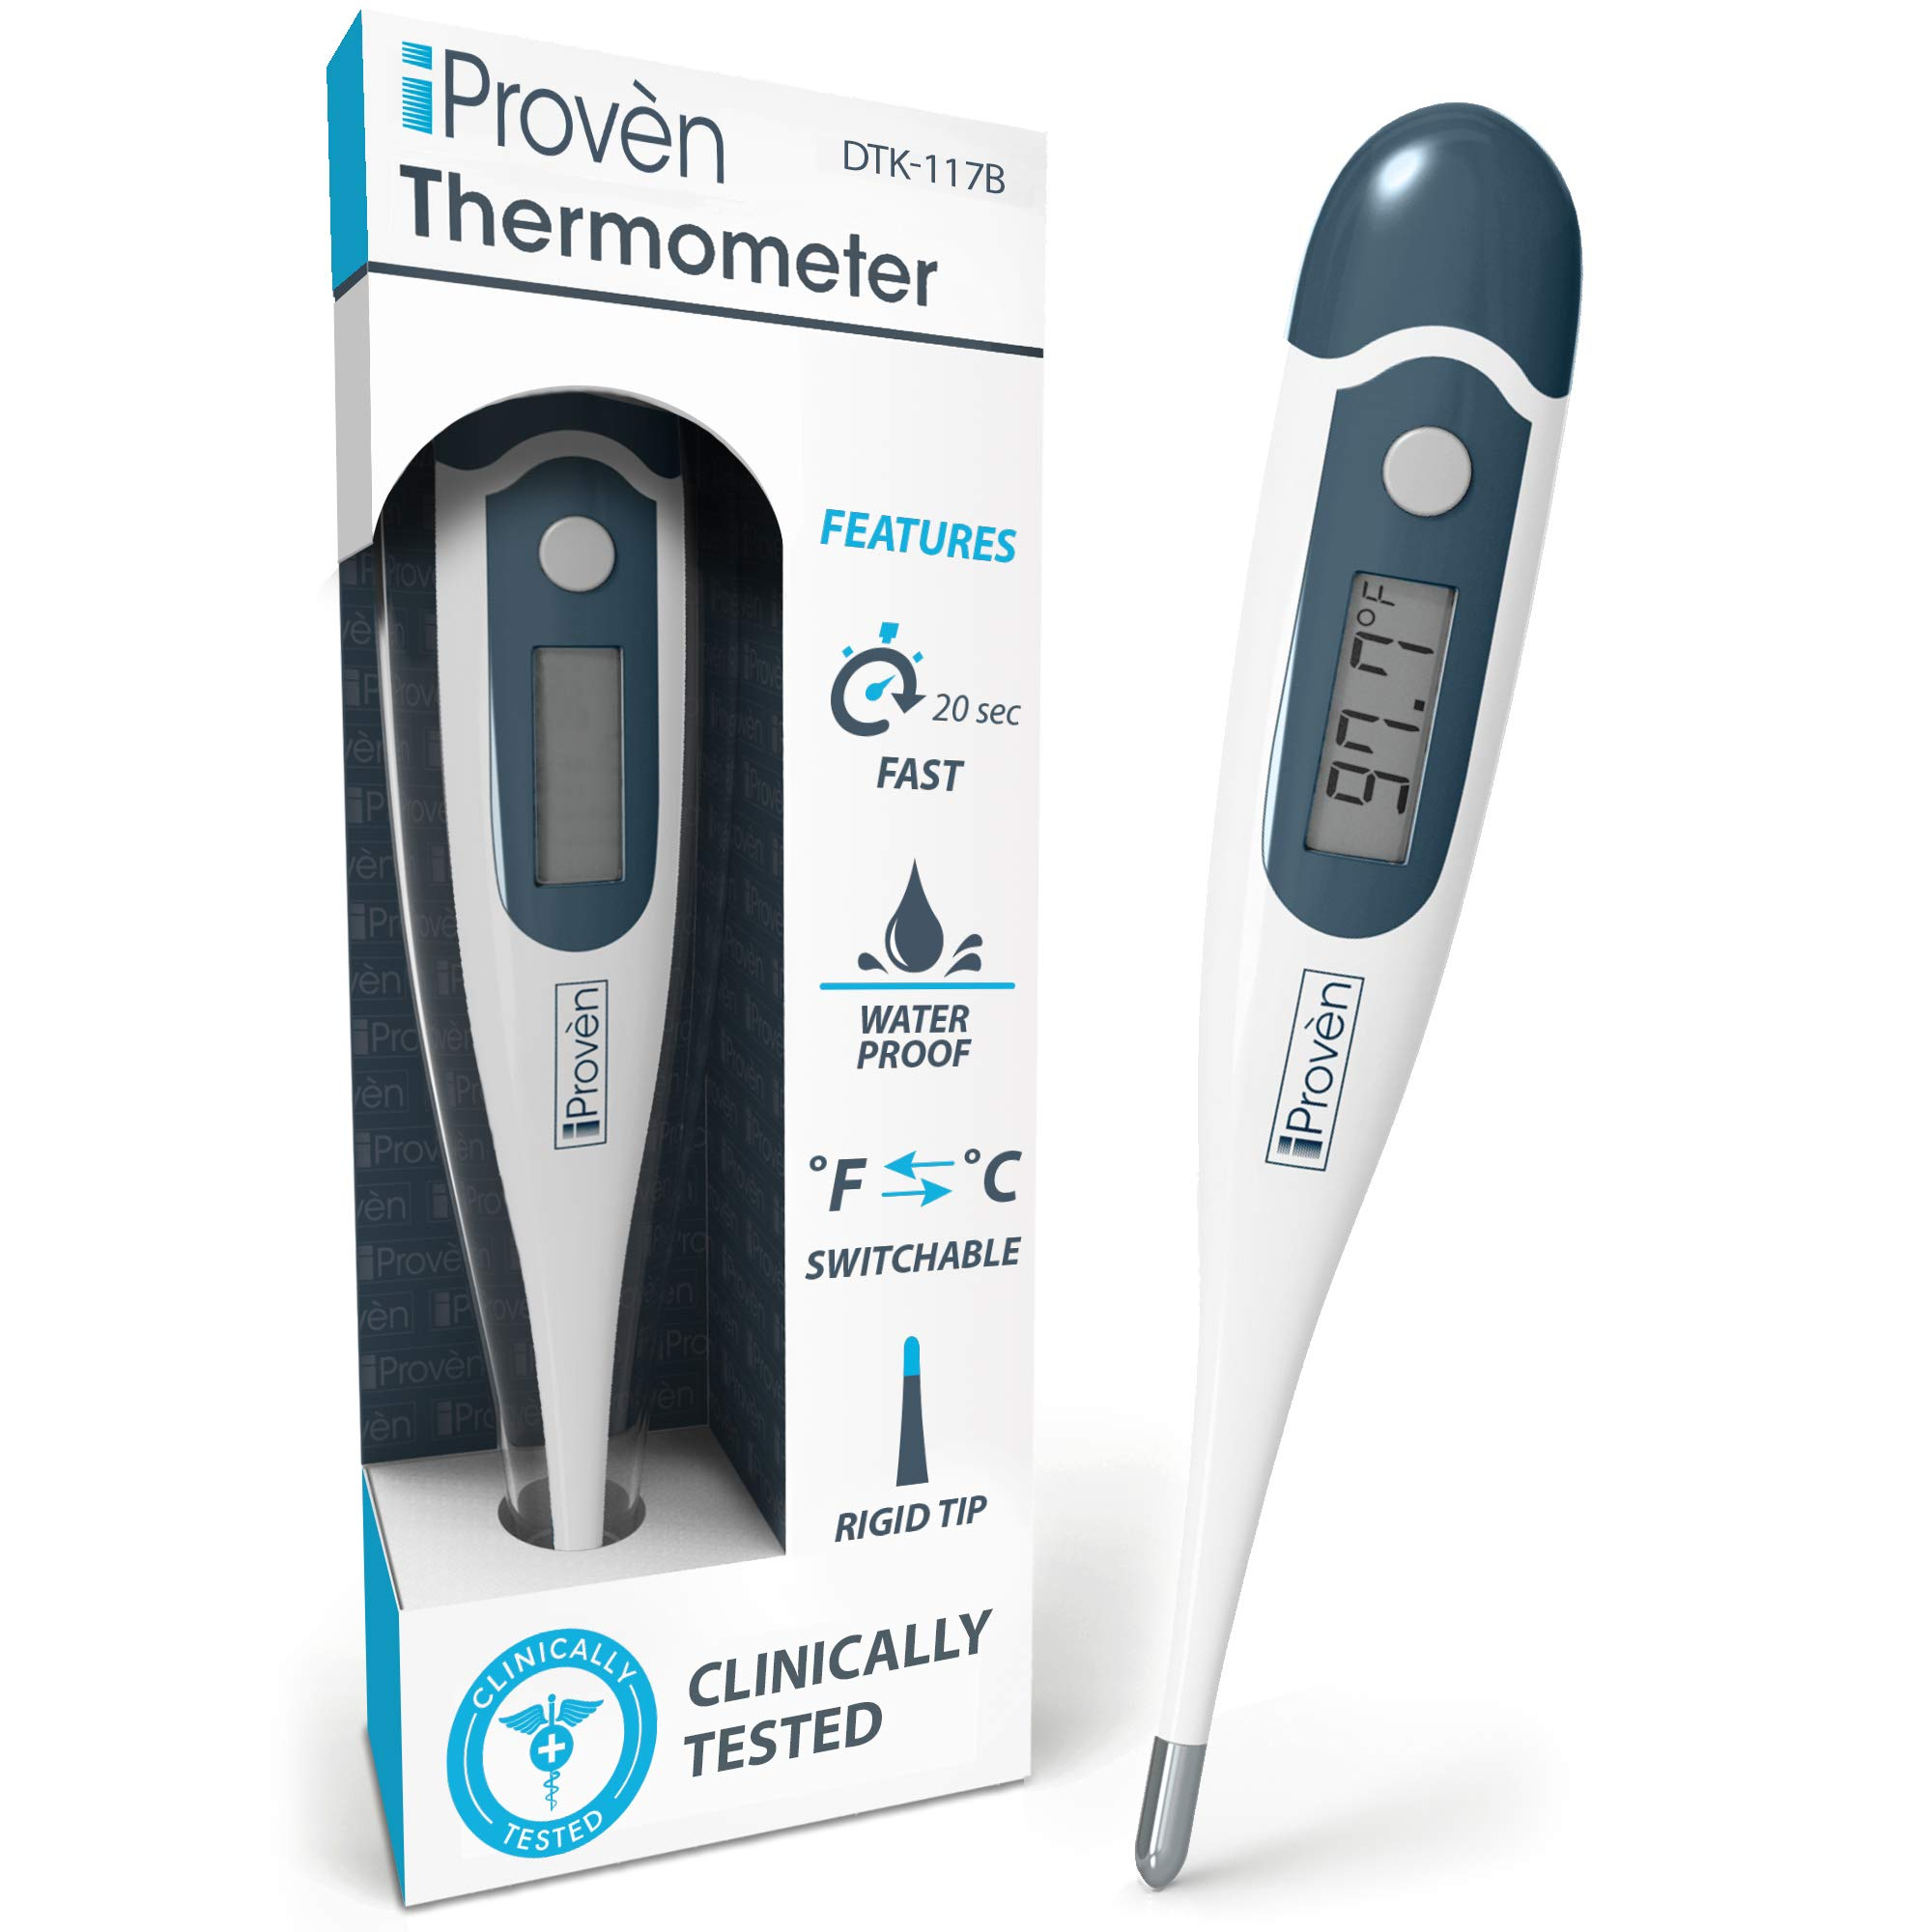 [New Version] iProvèn's Digital Rectal and Oral Thermometer for Fever - Highly Accurate & Fast Readings - with Fever Alarm & Waterproof - iProvèn's DTK-117B by iProvèn